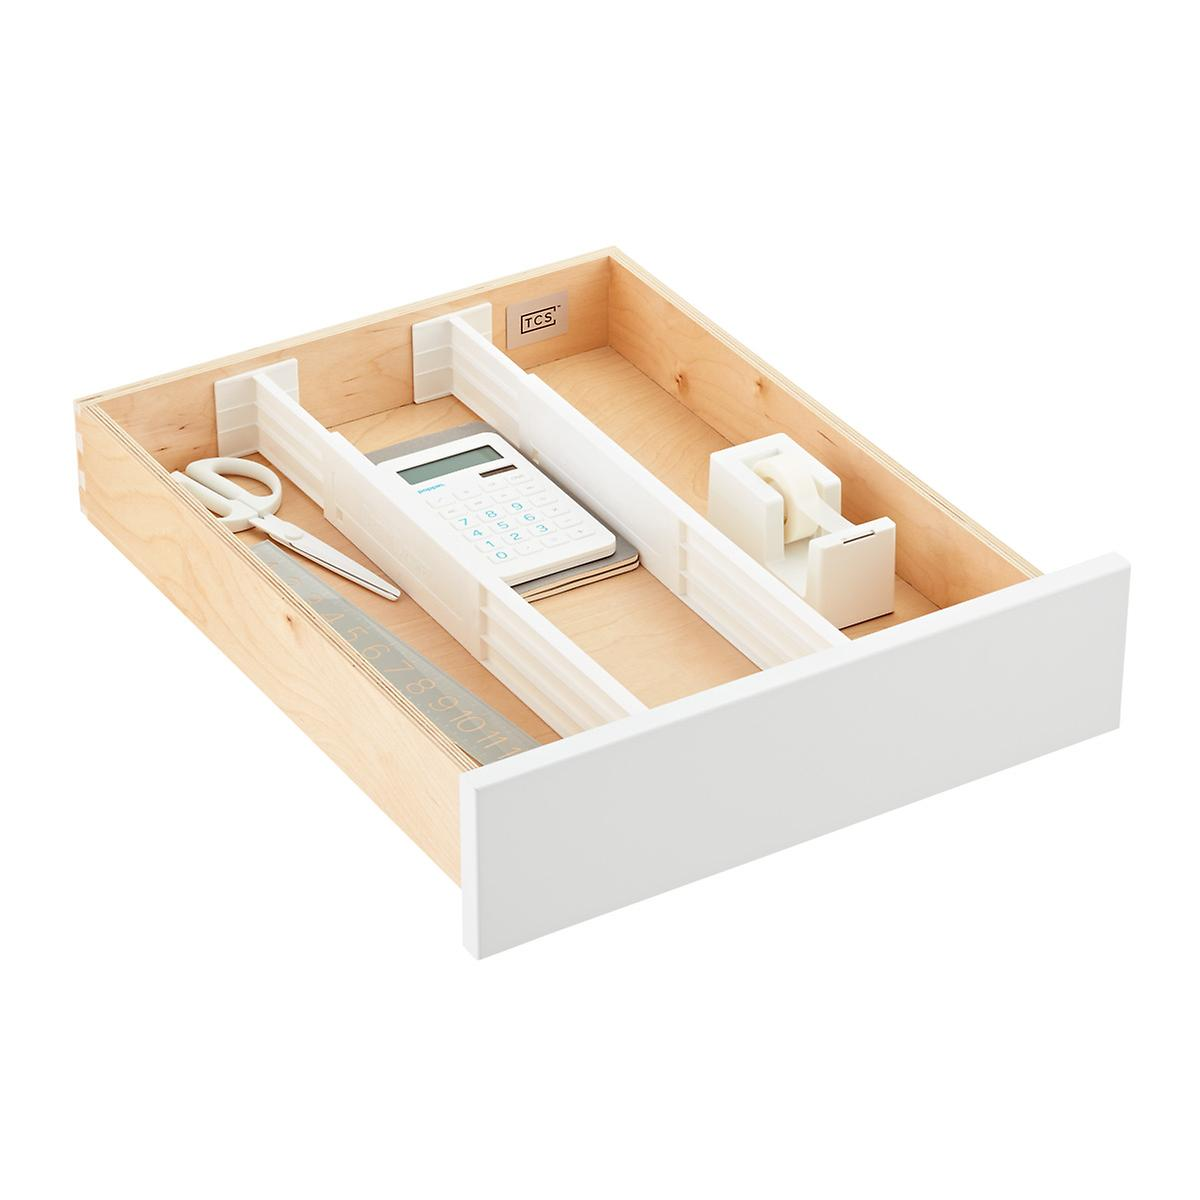 drawer organizer kitchen 3 quot drawer organizers the container 3460